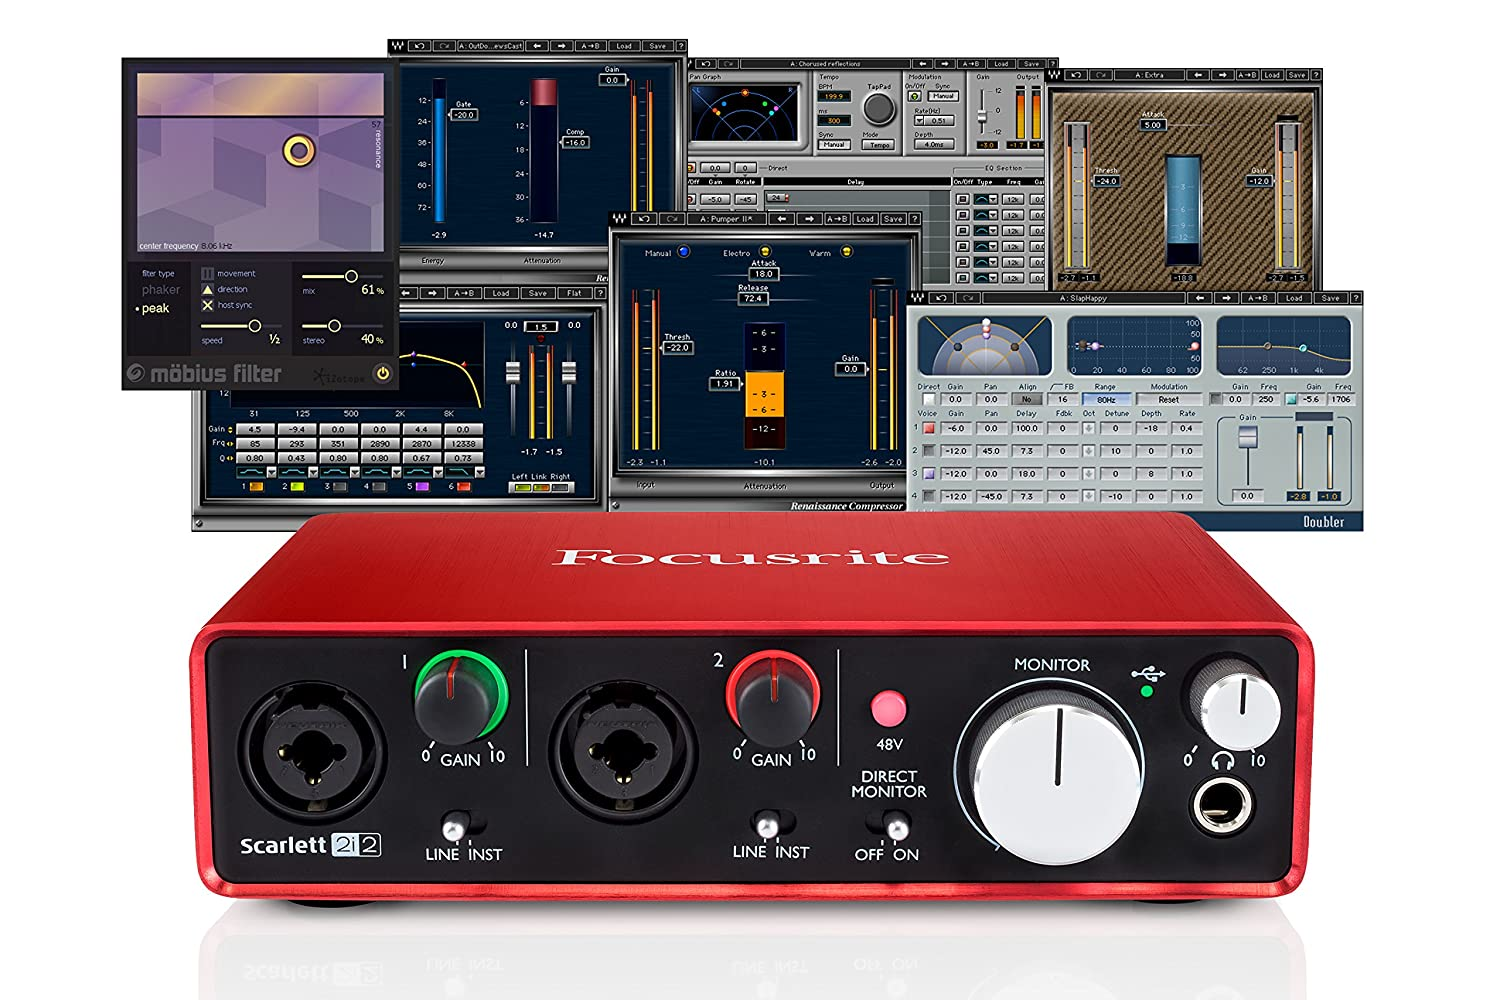 Focusrite Scarlett 2i2 (2nd Gen) USB Audio Interface + Waves Musicians 2 + iZotope Mobius Filter Bundle 4334426836